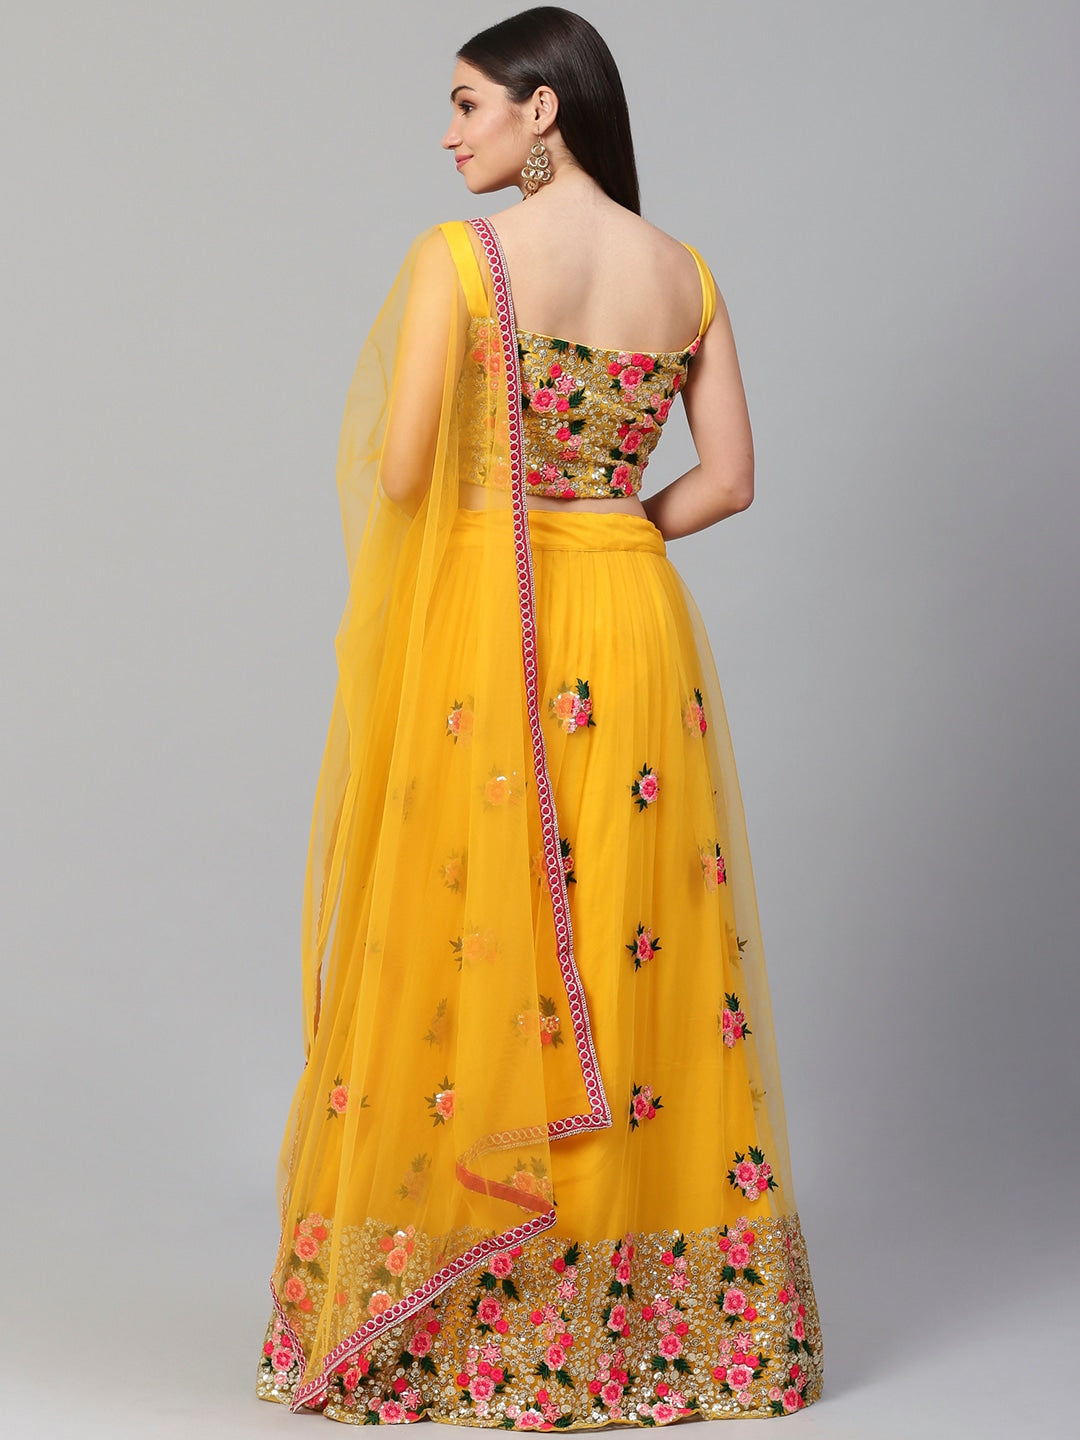 Net Yellow and Pink Embroidered Semi-Stitched Lehenga /& Unstitched Blouse with Dupatta